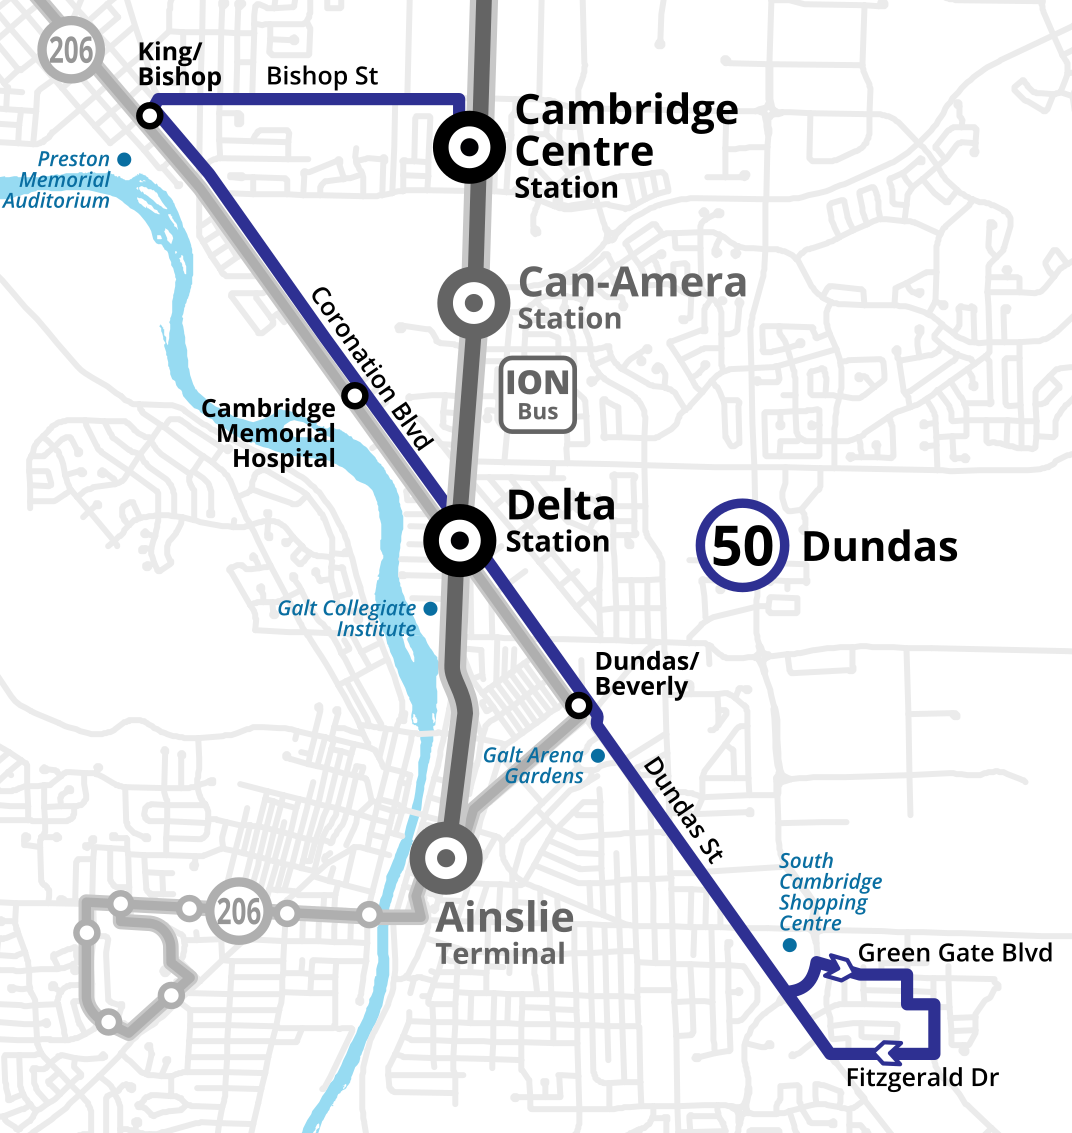 Map showing the proposed routing of the new 50 Dundas